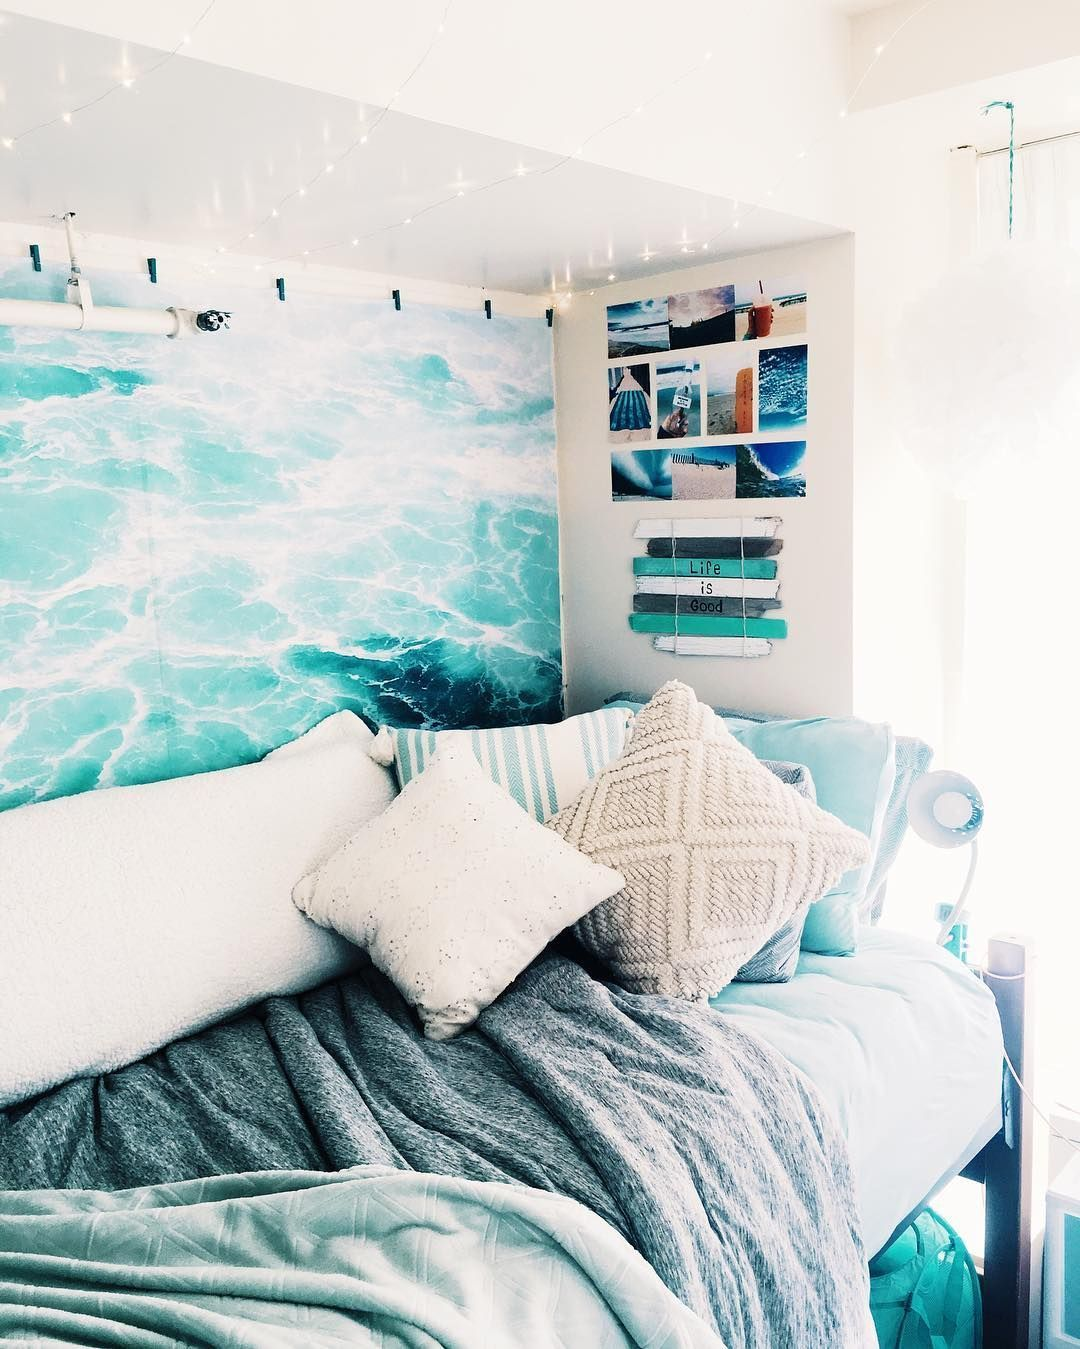 31+ Dorm Room Inspiration Decor Ideas -   13 room decor Summer inspiration ideas